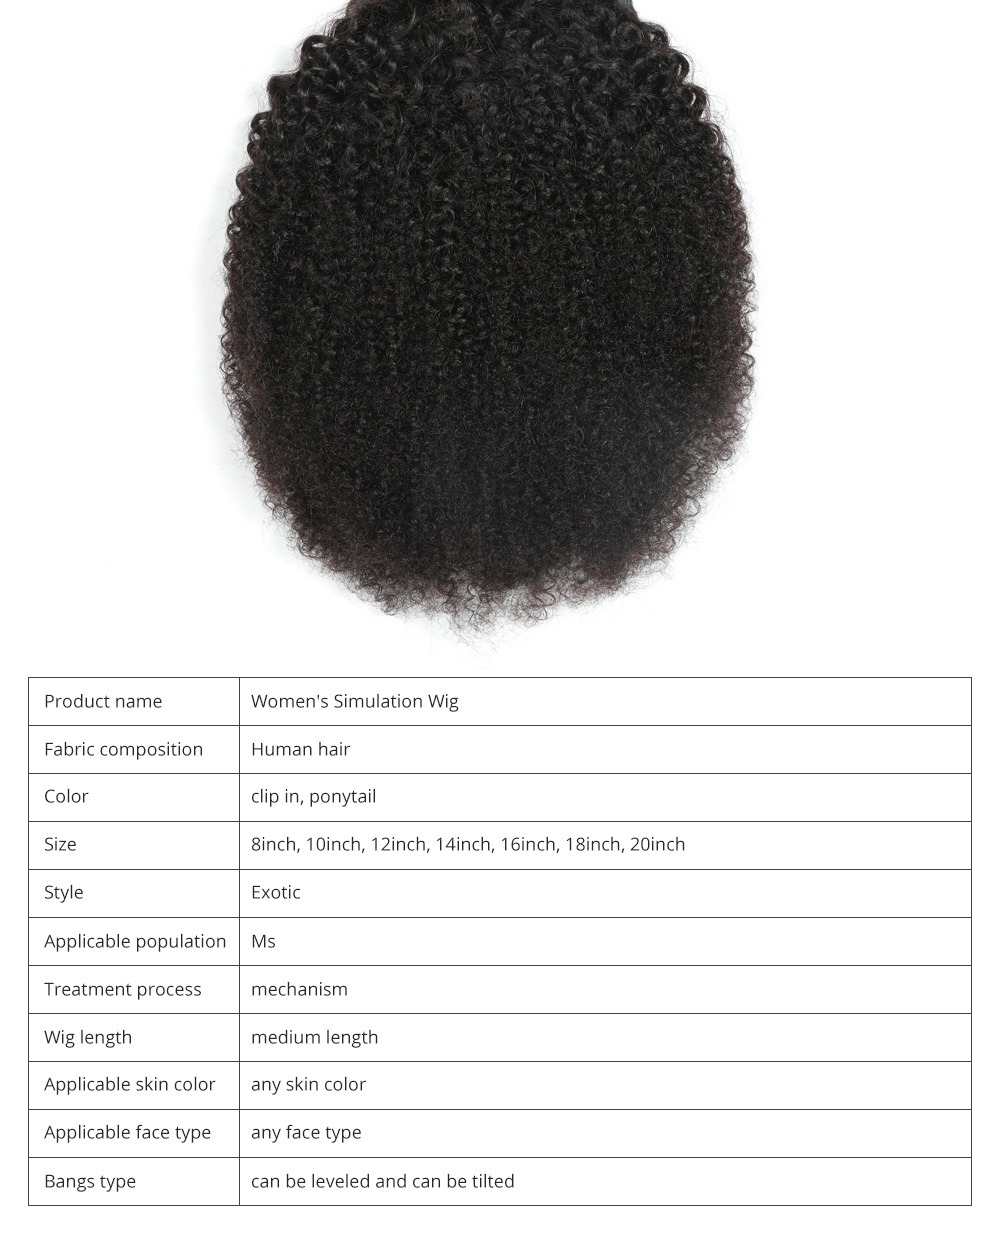 Women's Simulation Wig Contract Horsetail Afro Kinky Curly Clip in Real Hair Wig Ponytail for Girl Lady Women 6